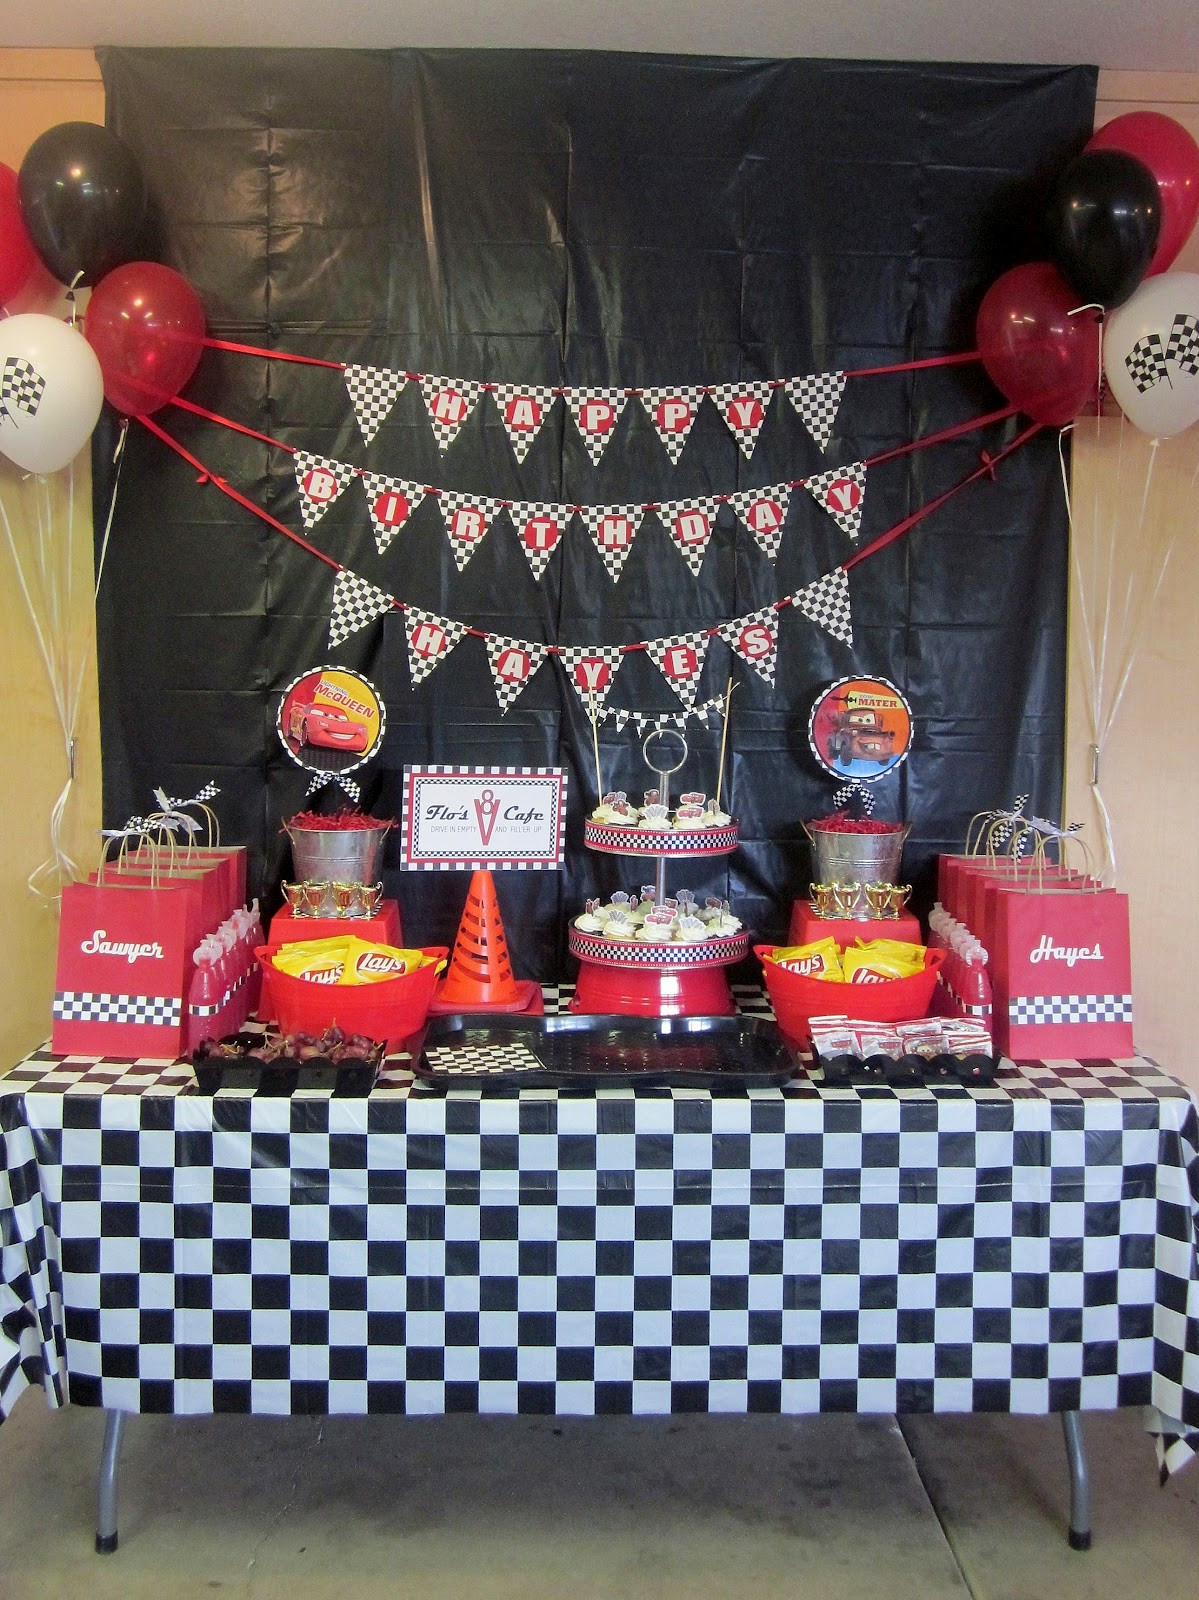 Best ideas about Cars Birthday Decorations . Save or Pin Adorable Antics April 2012 Now.